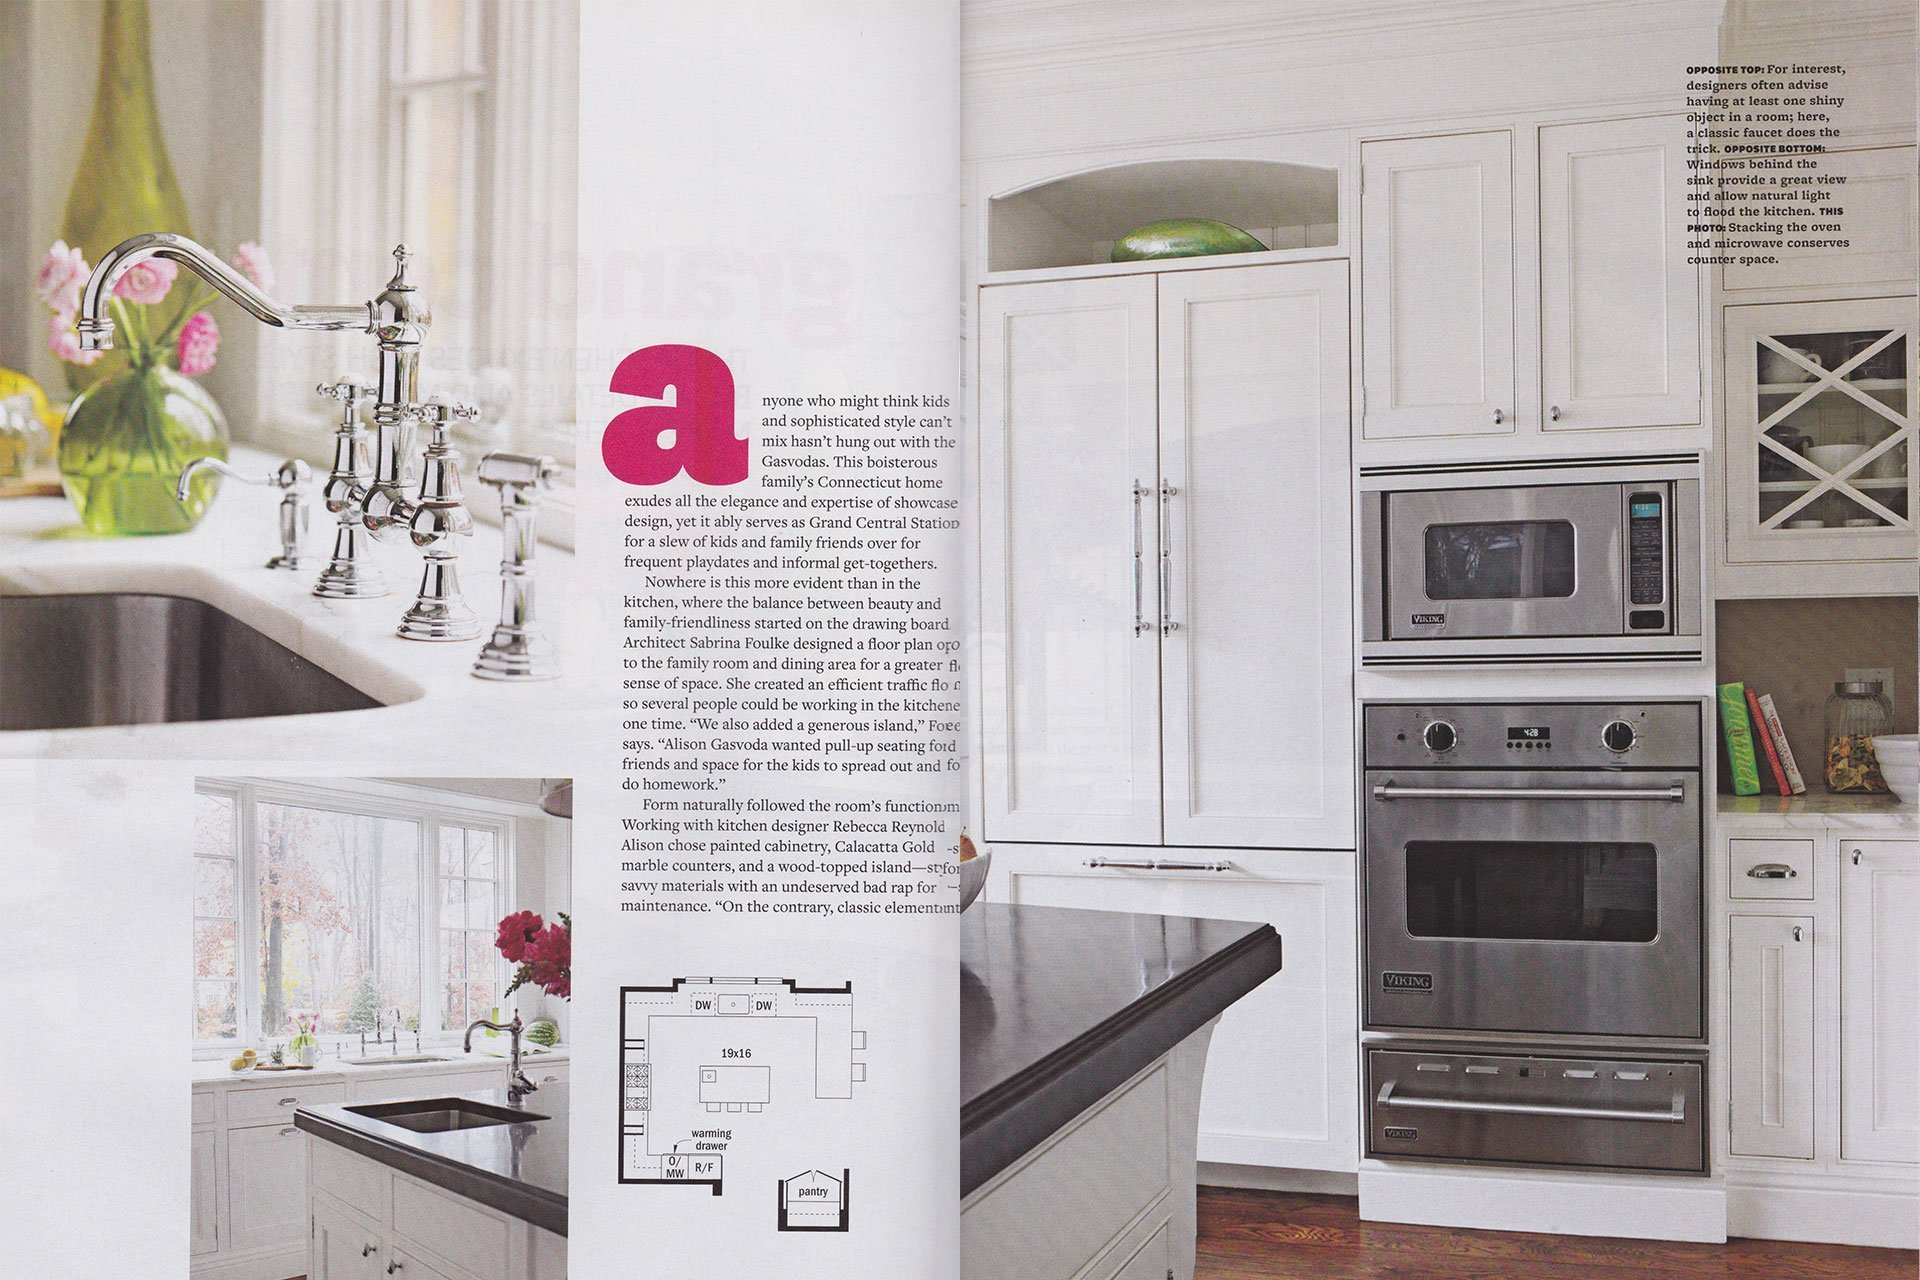 2012 Kitchen & Bath Ideas magazine inside